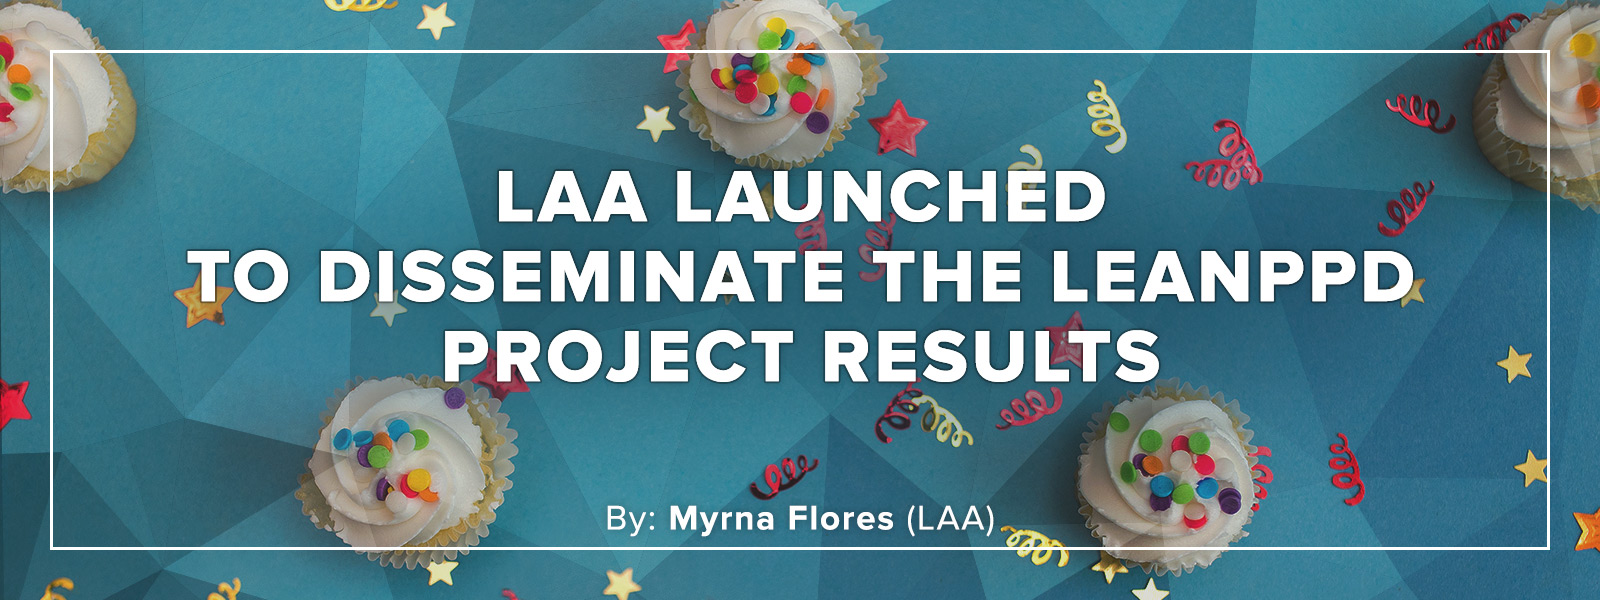 laa-blog-laa-launched